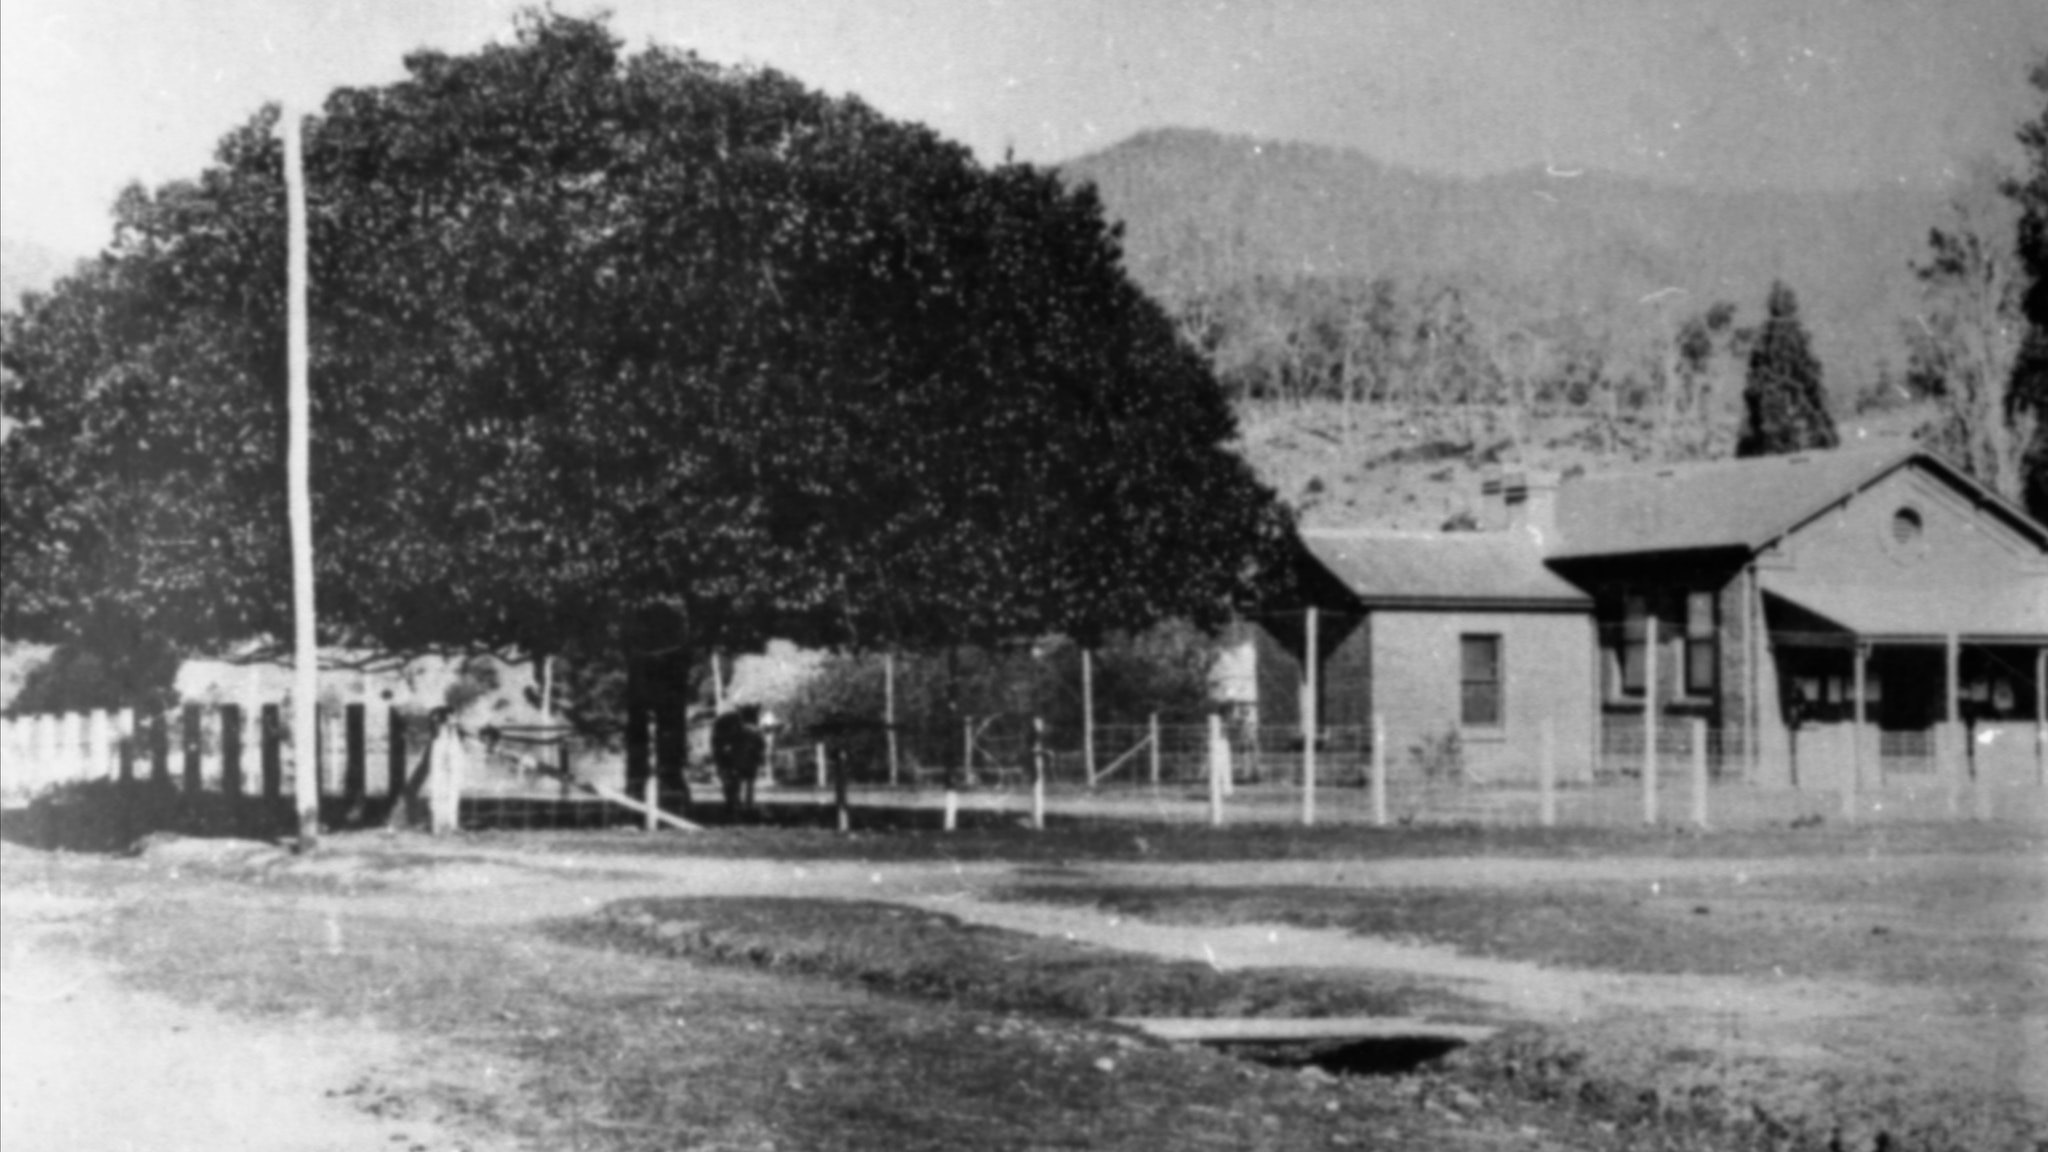 Old Courthouse with chestnut tree